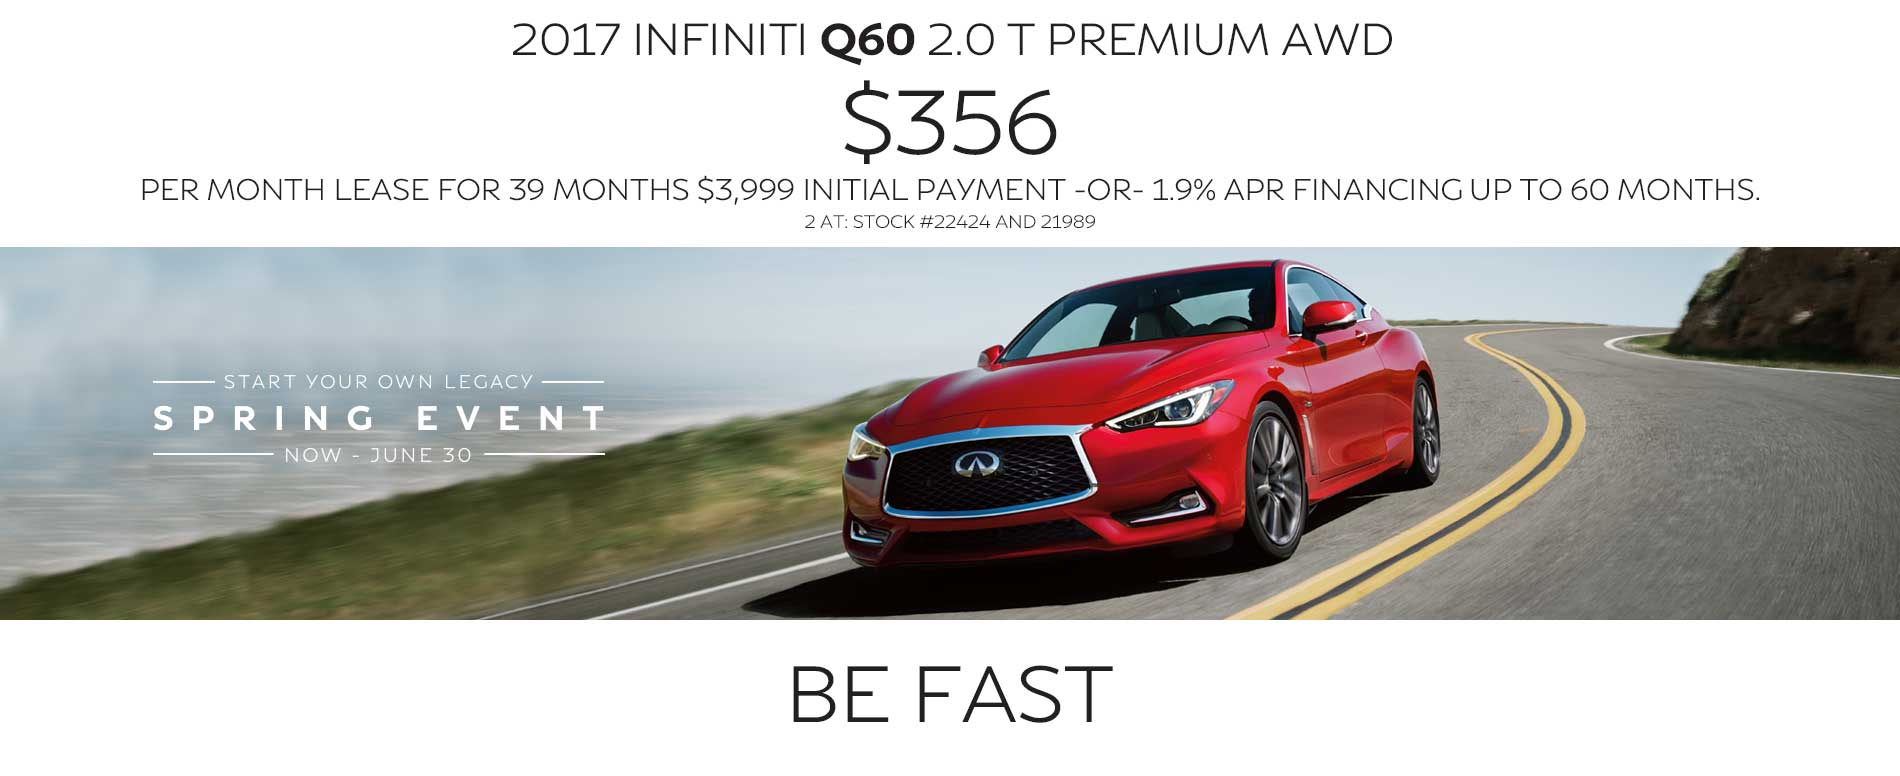 BE fast. Lease a 2017 INFINITI Q60 for $356 per month with $3,999 due at signing or 1.9% APR financing up to 60 months.